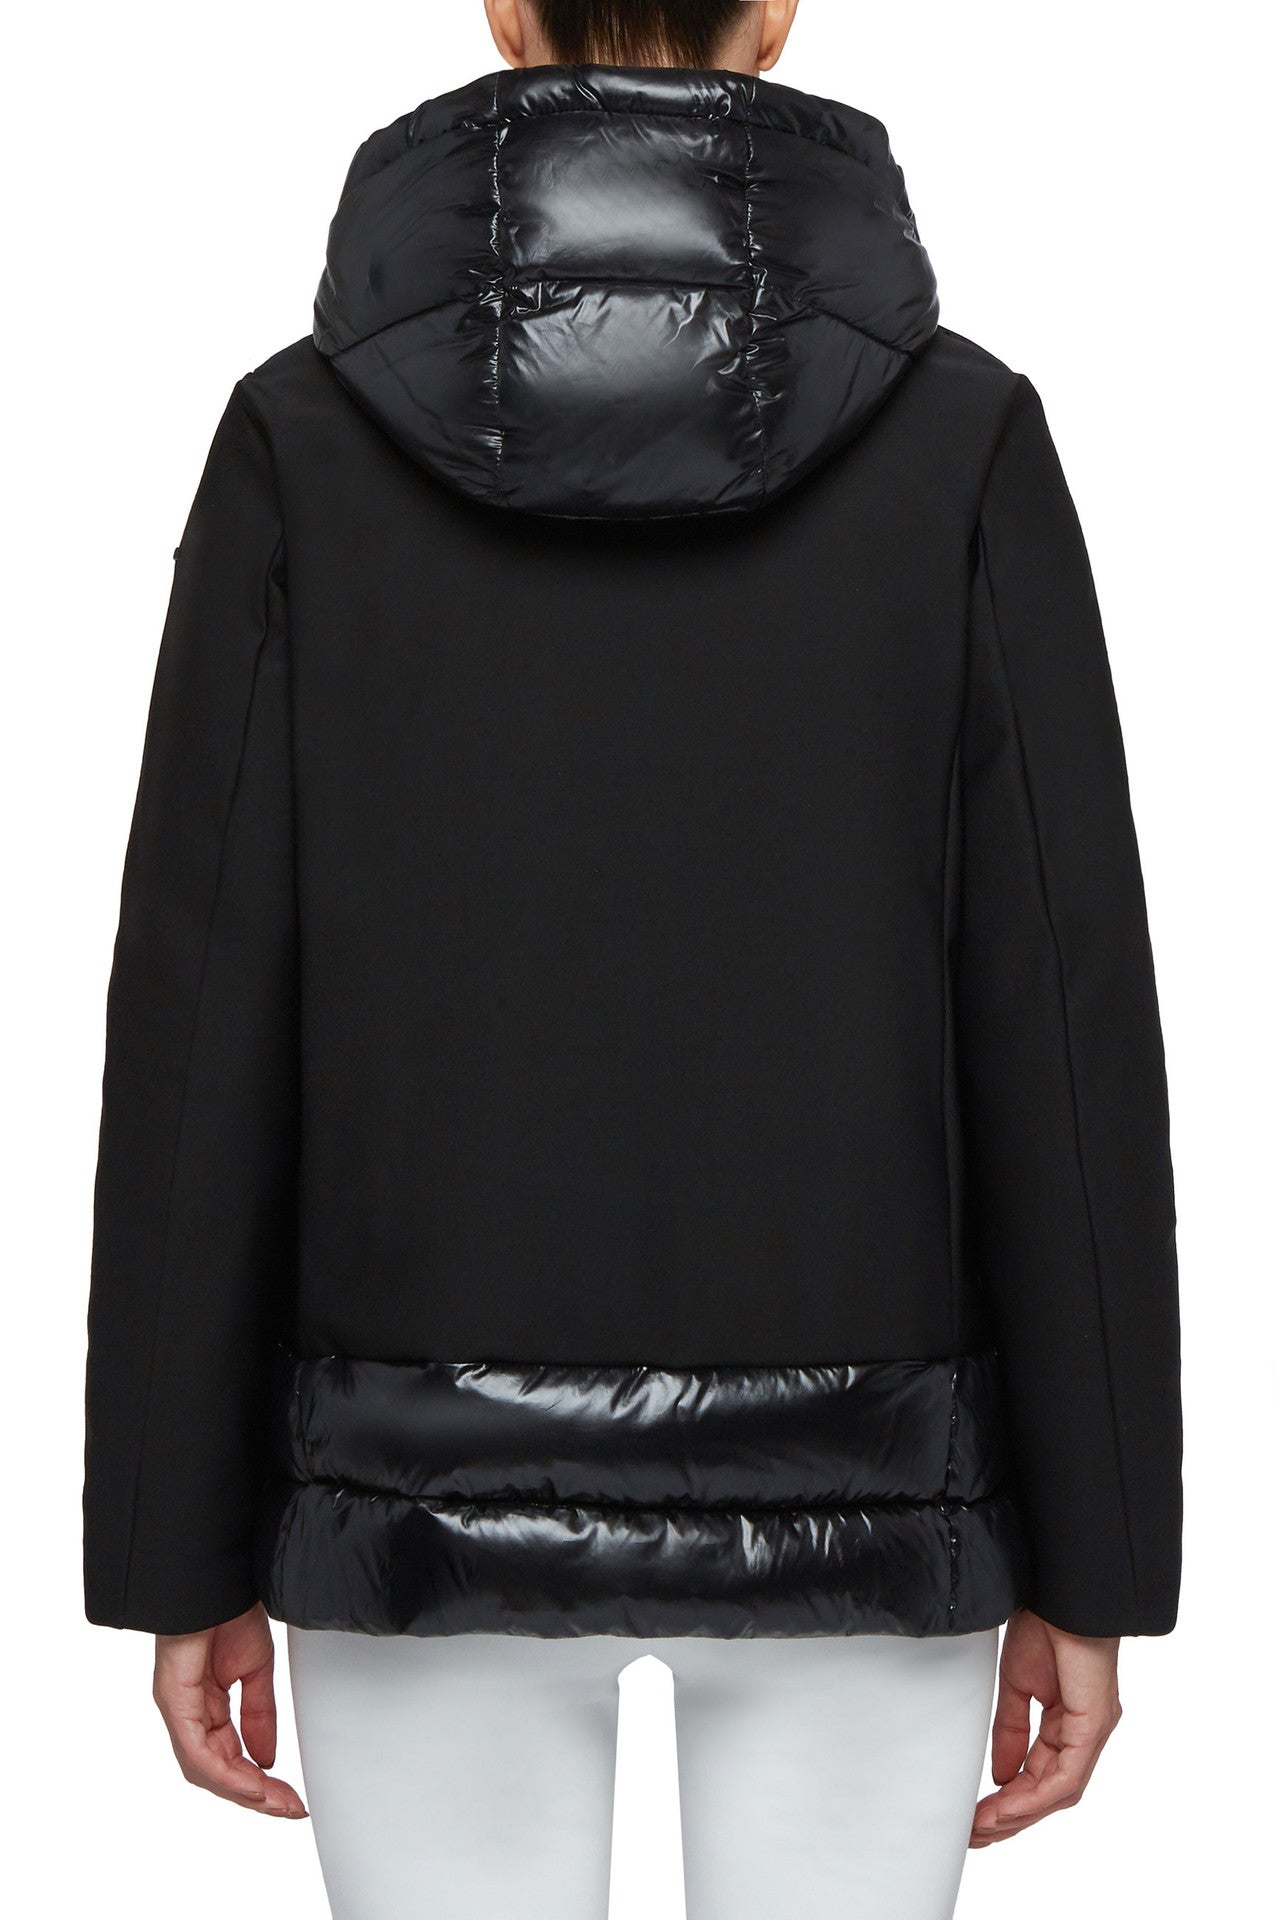 Black Rain Coat with Patent Leather Hood